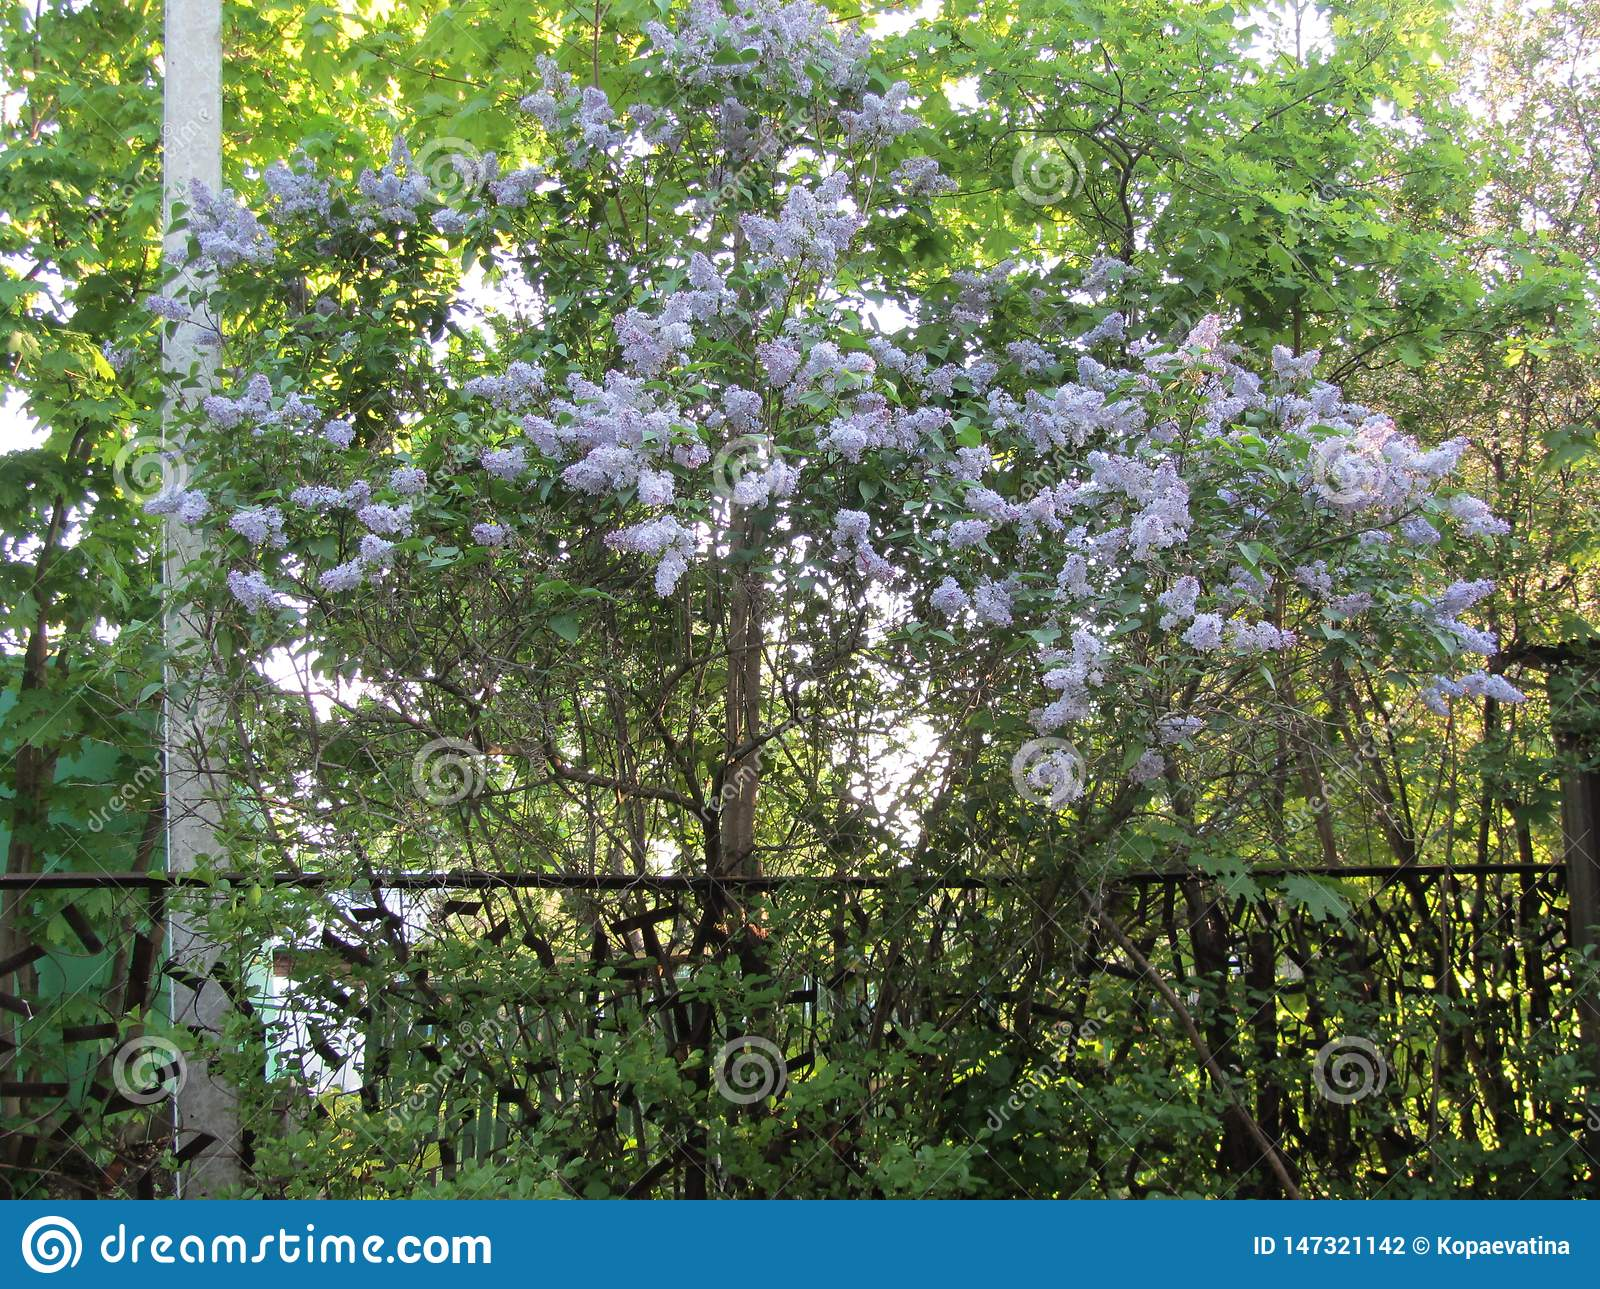 Lush and tender lilac in the garden.